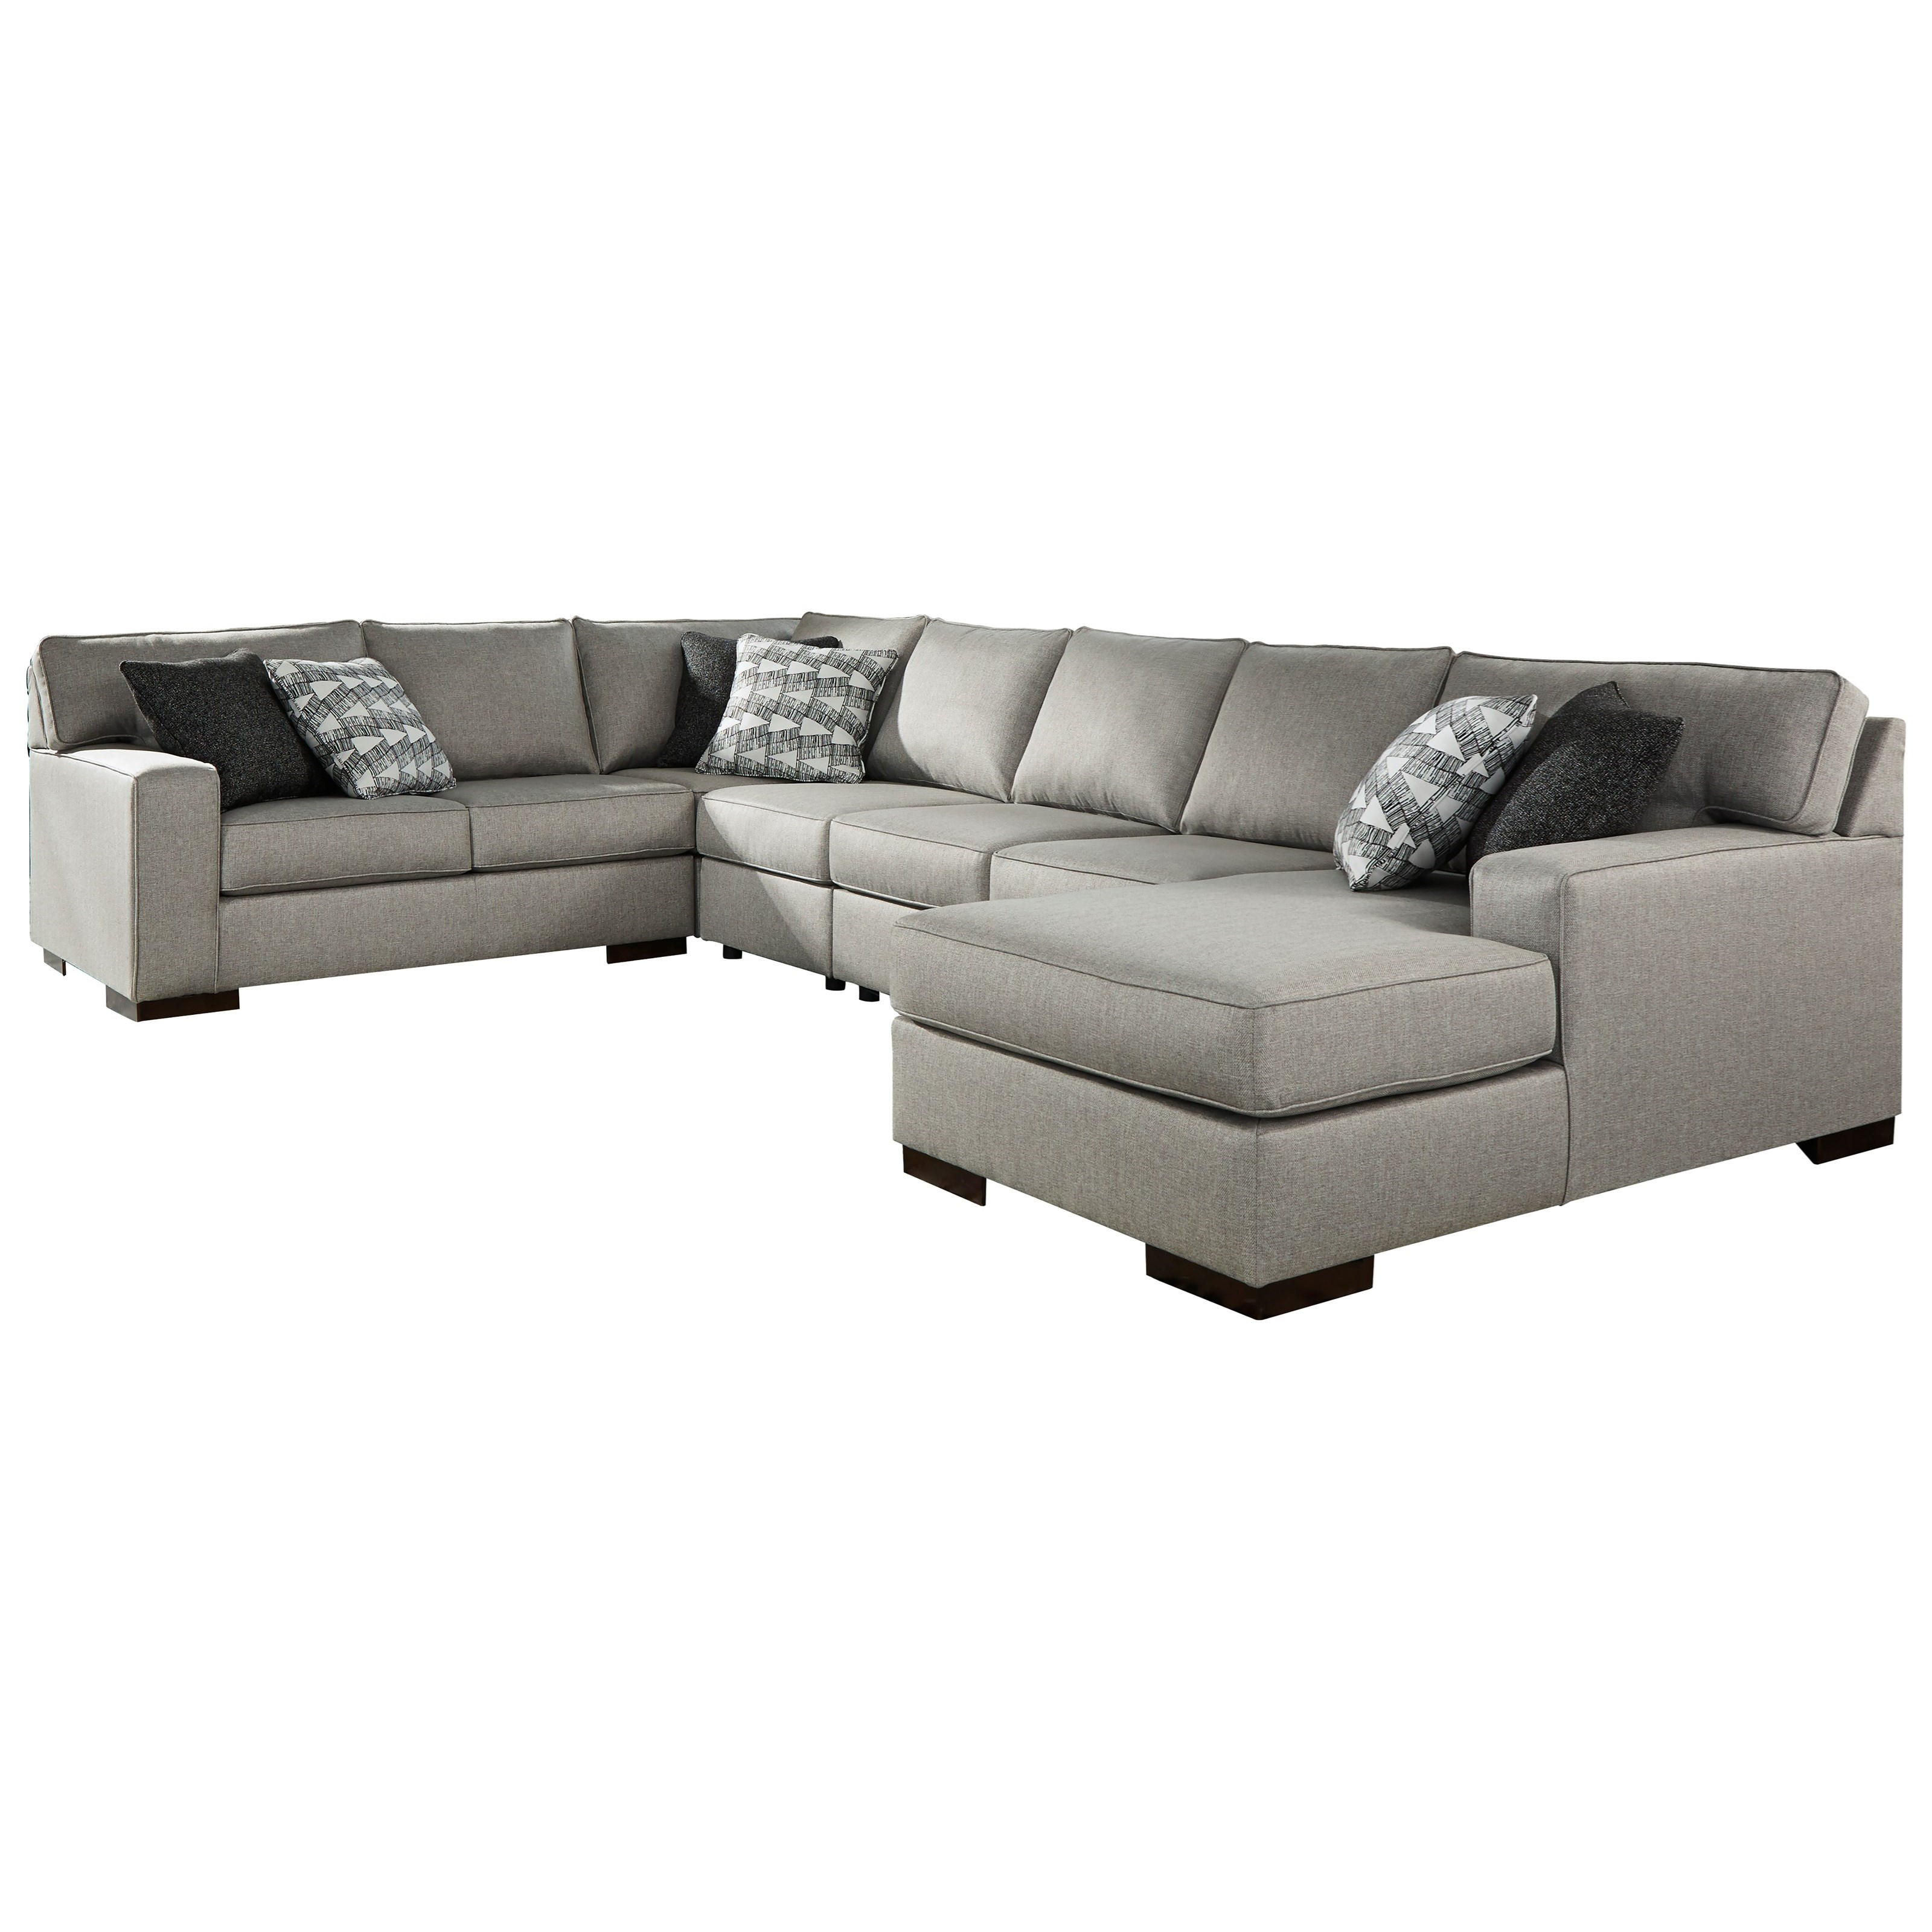 Marsing Nuvella 5-Piece Sectional with Chaise by Benchcraft at Walker's Furniture